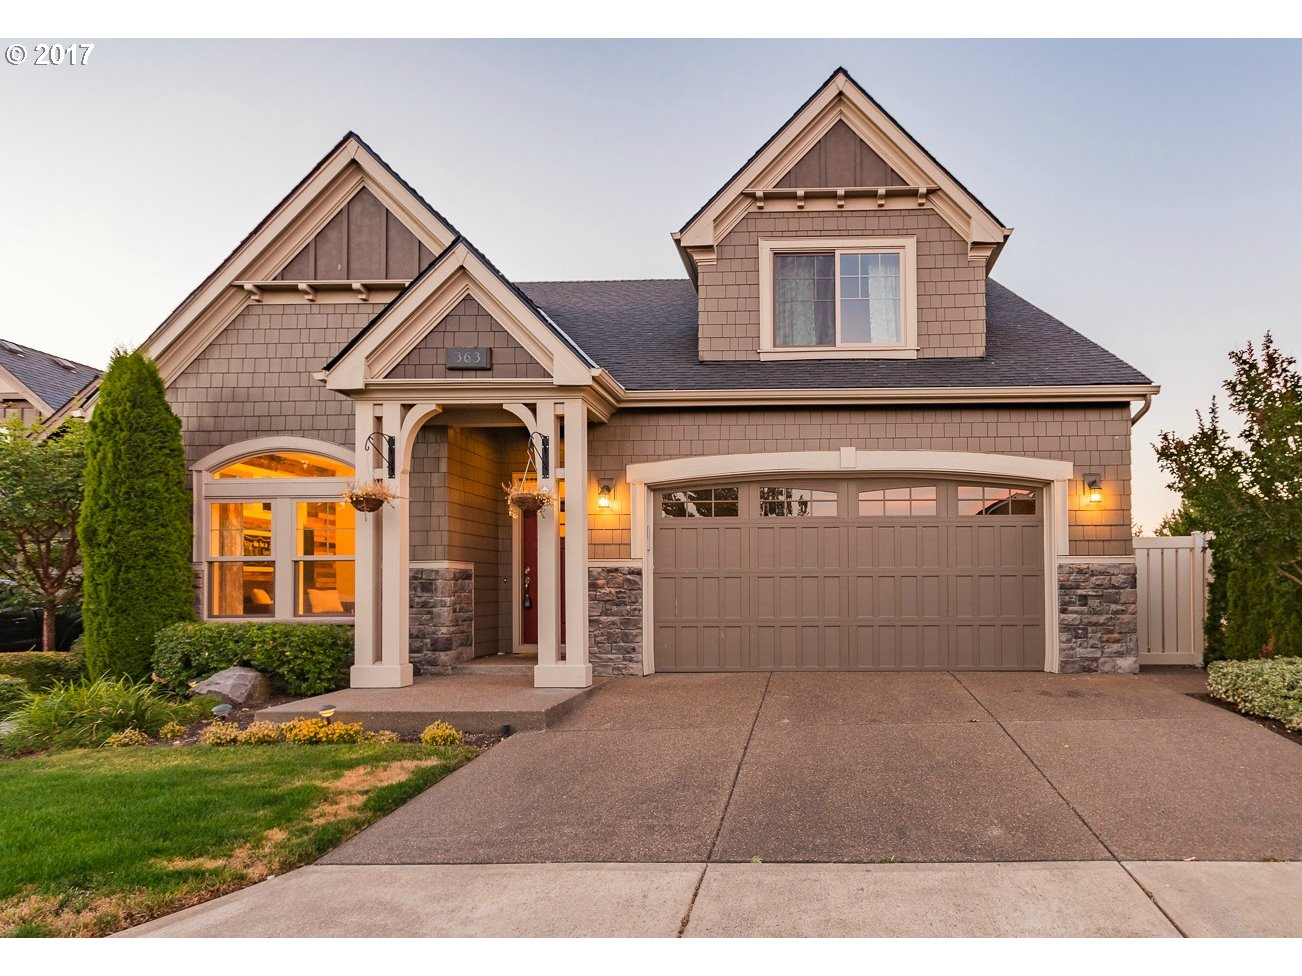 363 TURNBERRY AVE, Woodburn, OR 97071